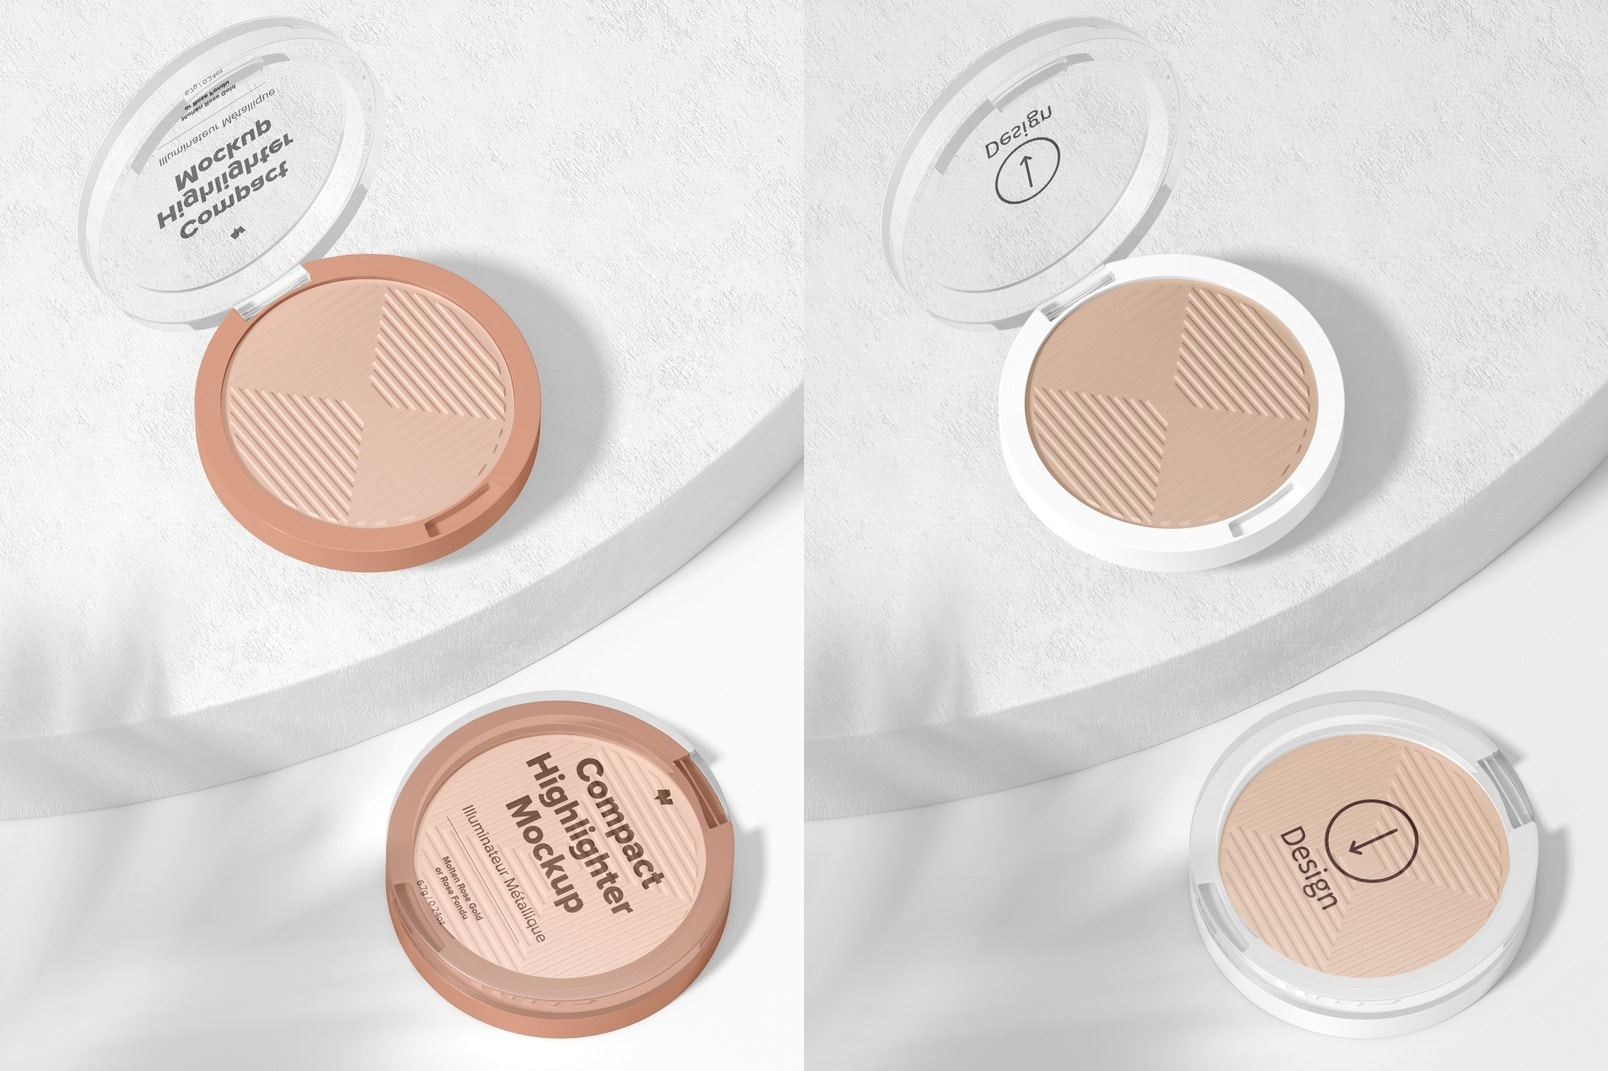 Compact Highlighter Packaging Mockup, Perspective